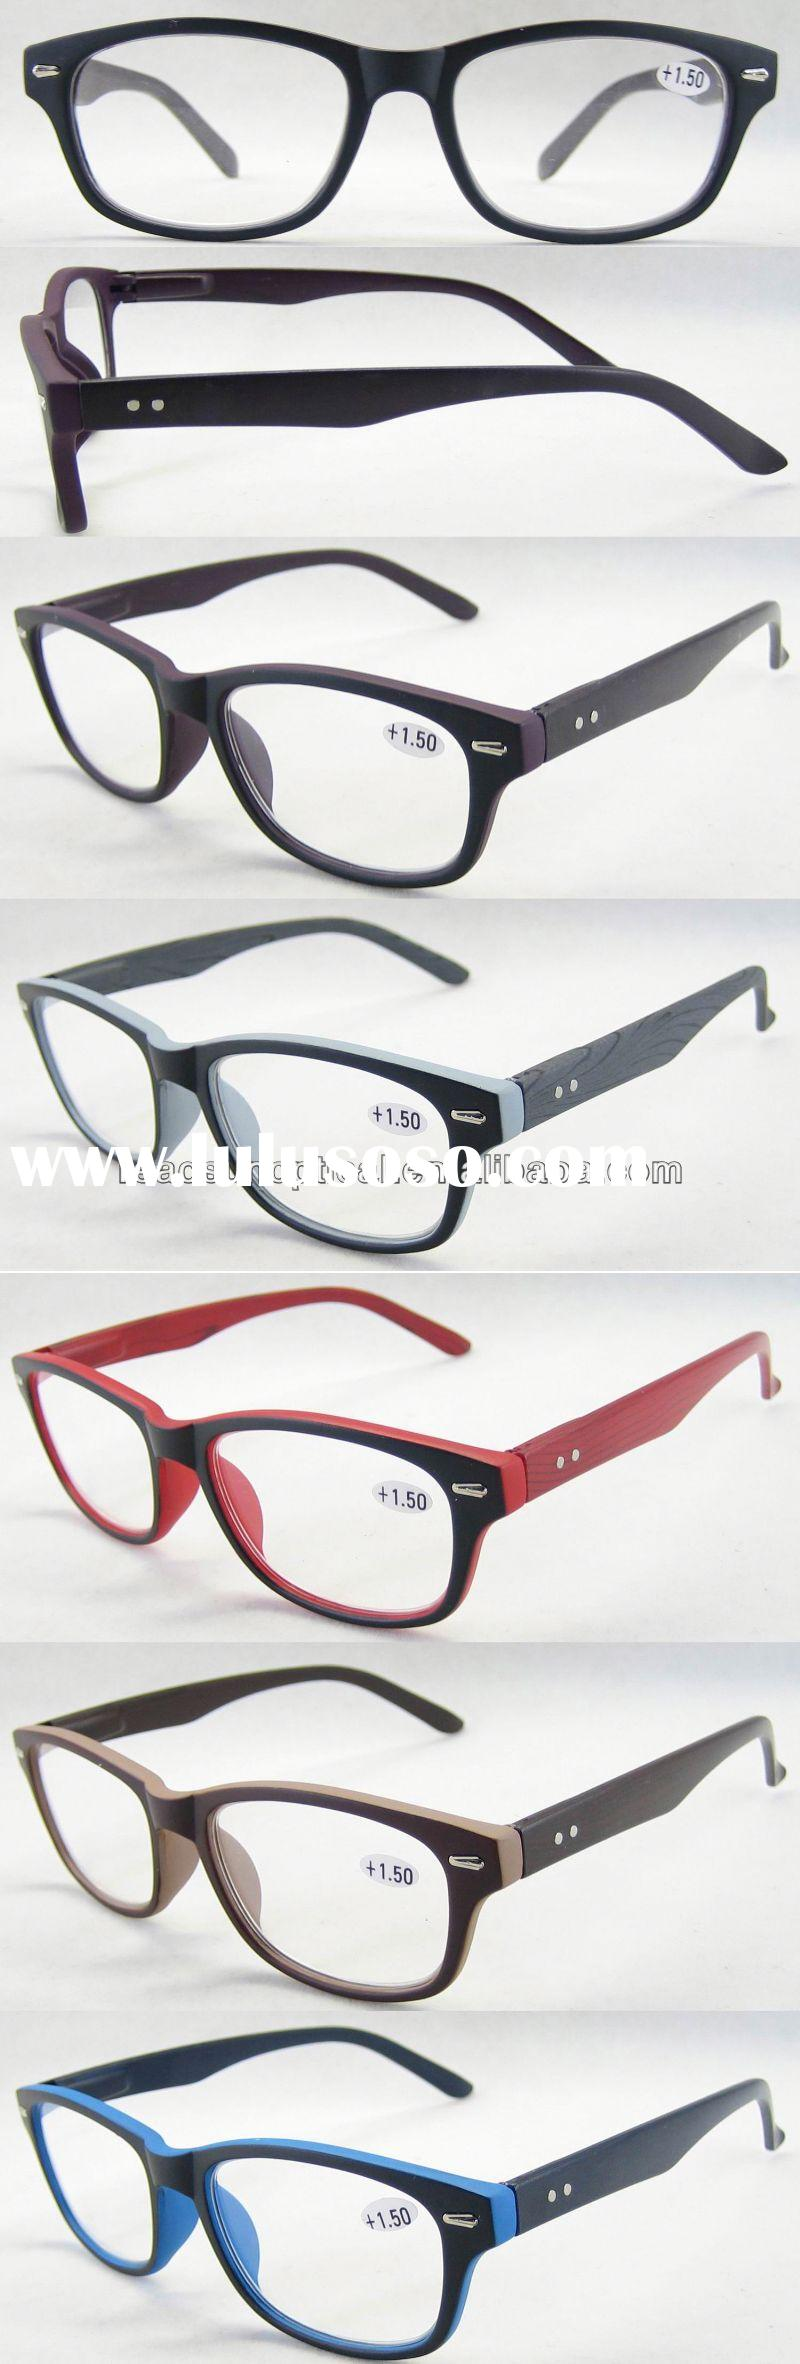 designer reading glasses uk 3.5 reading glasses stylish reading glasses for men